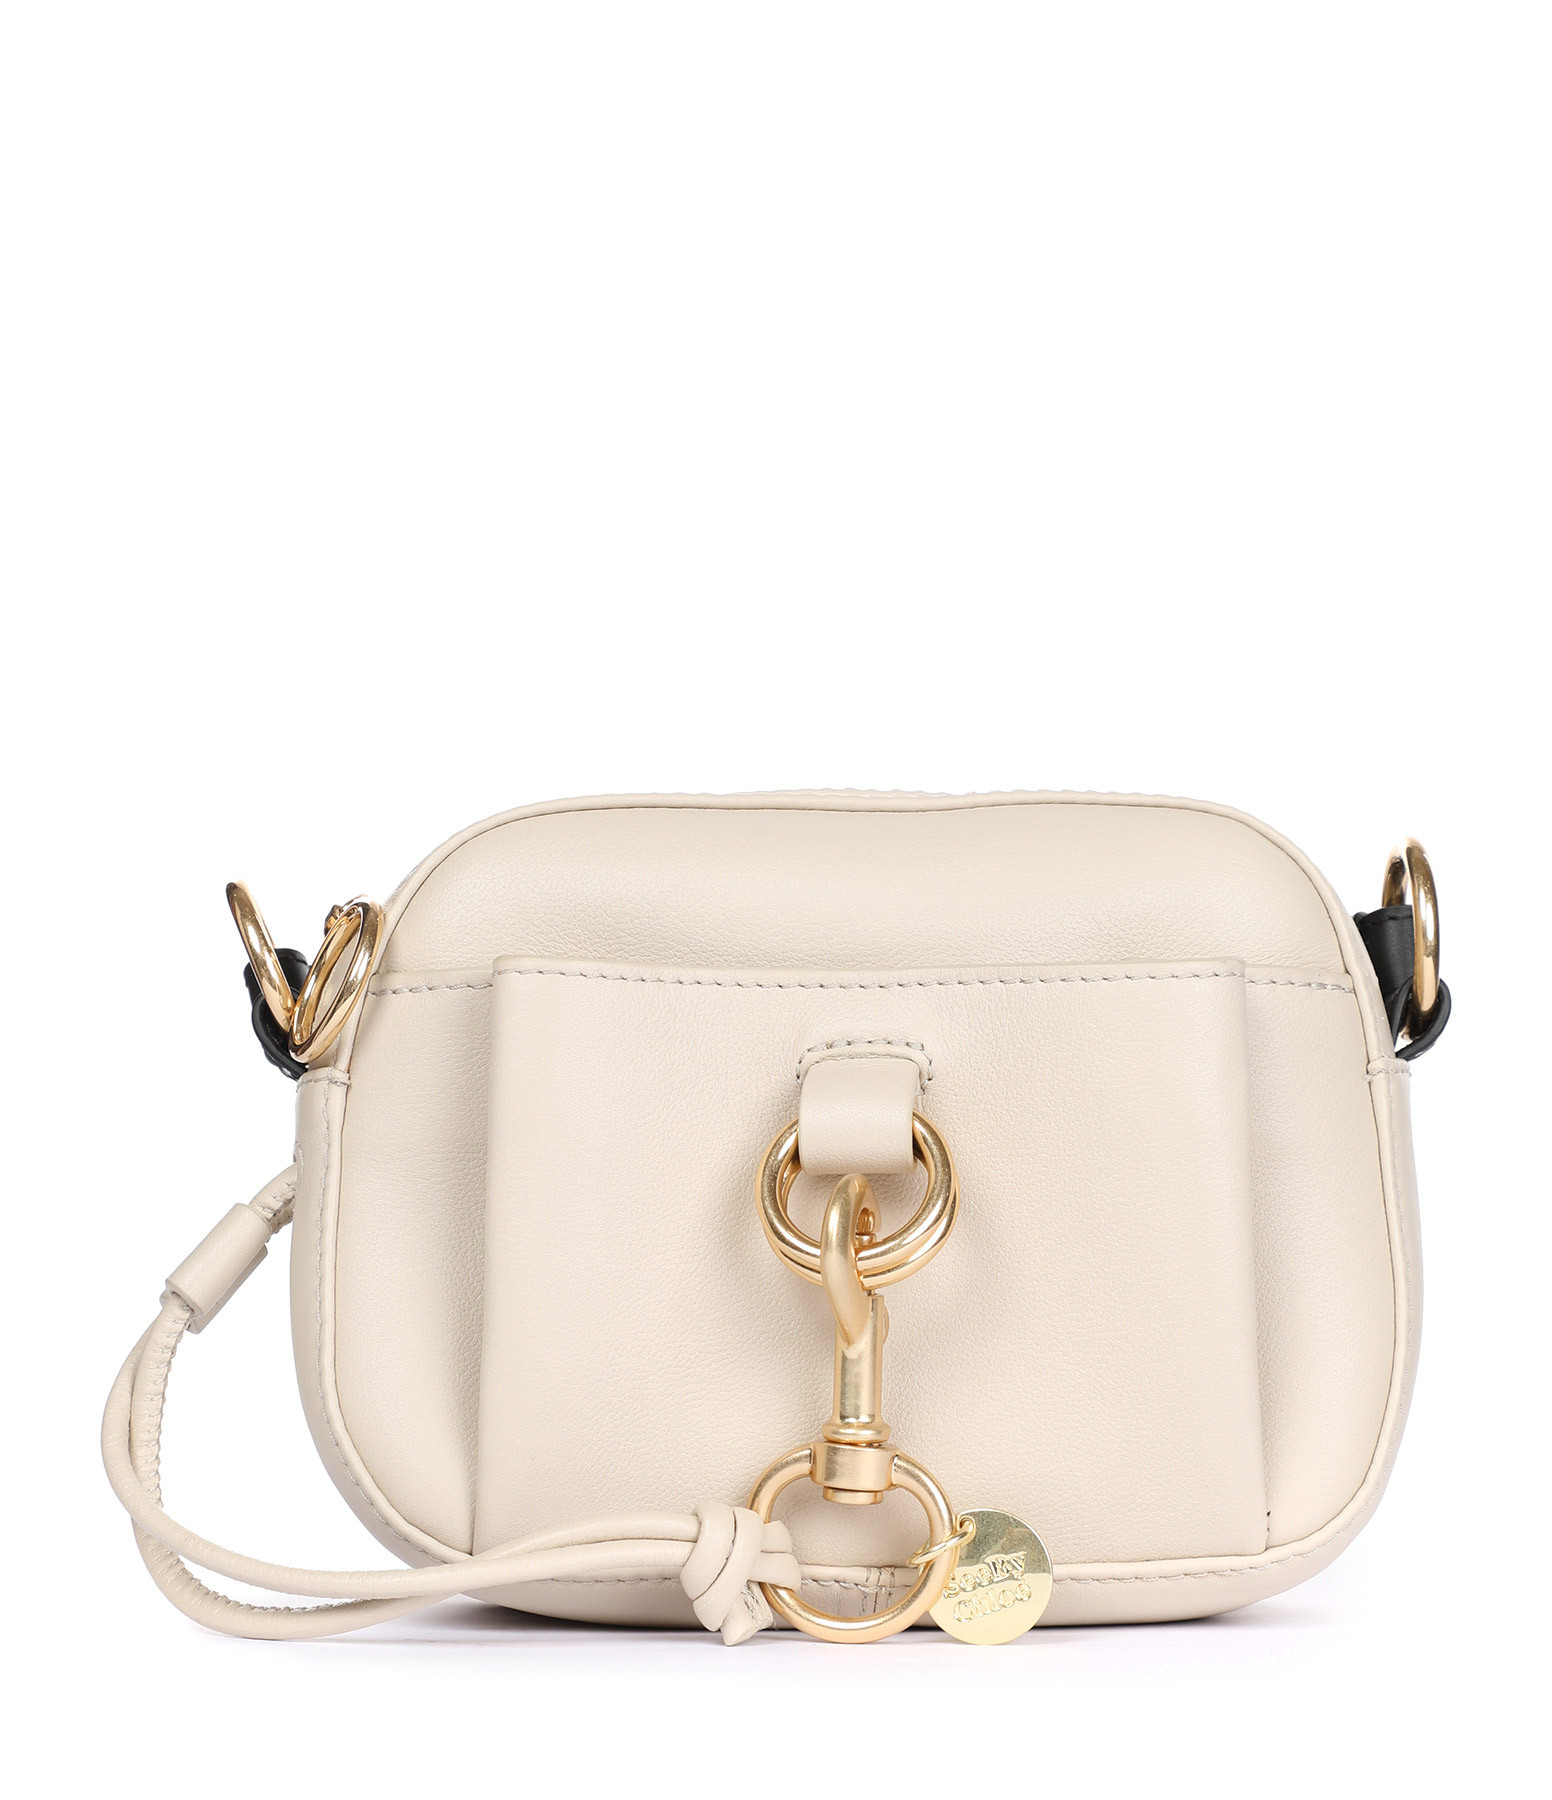 SEE BY CHLOE - Sac Tony Cuir Beige Ciment